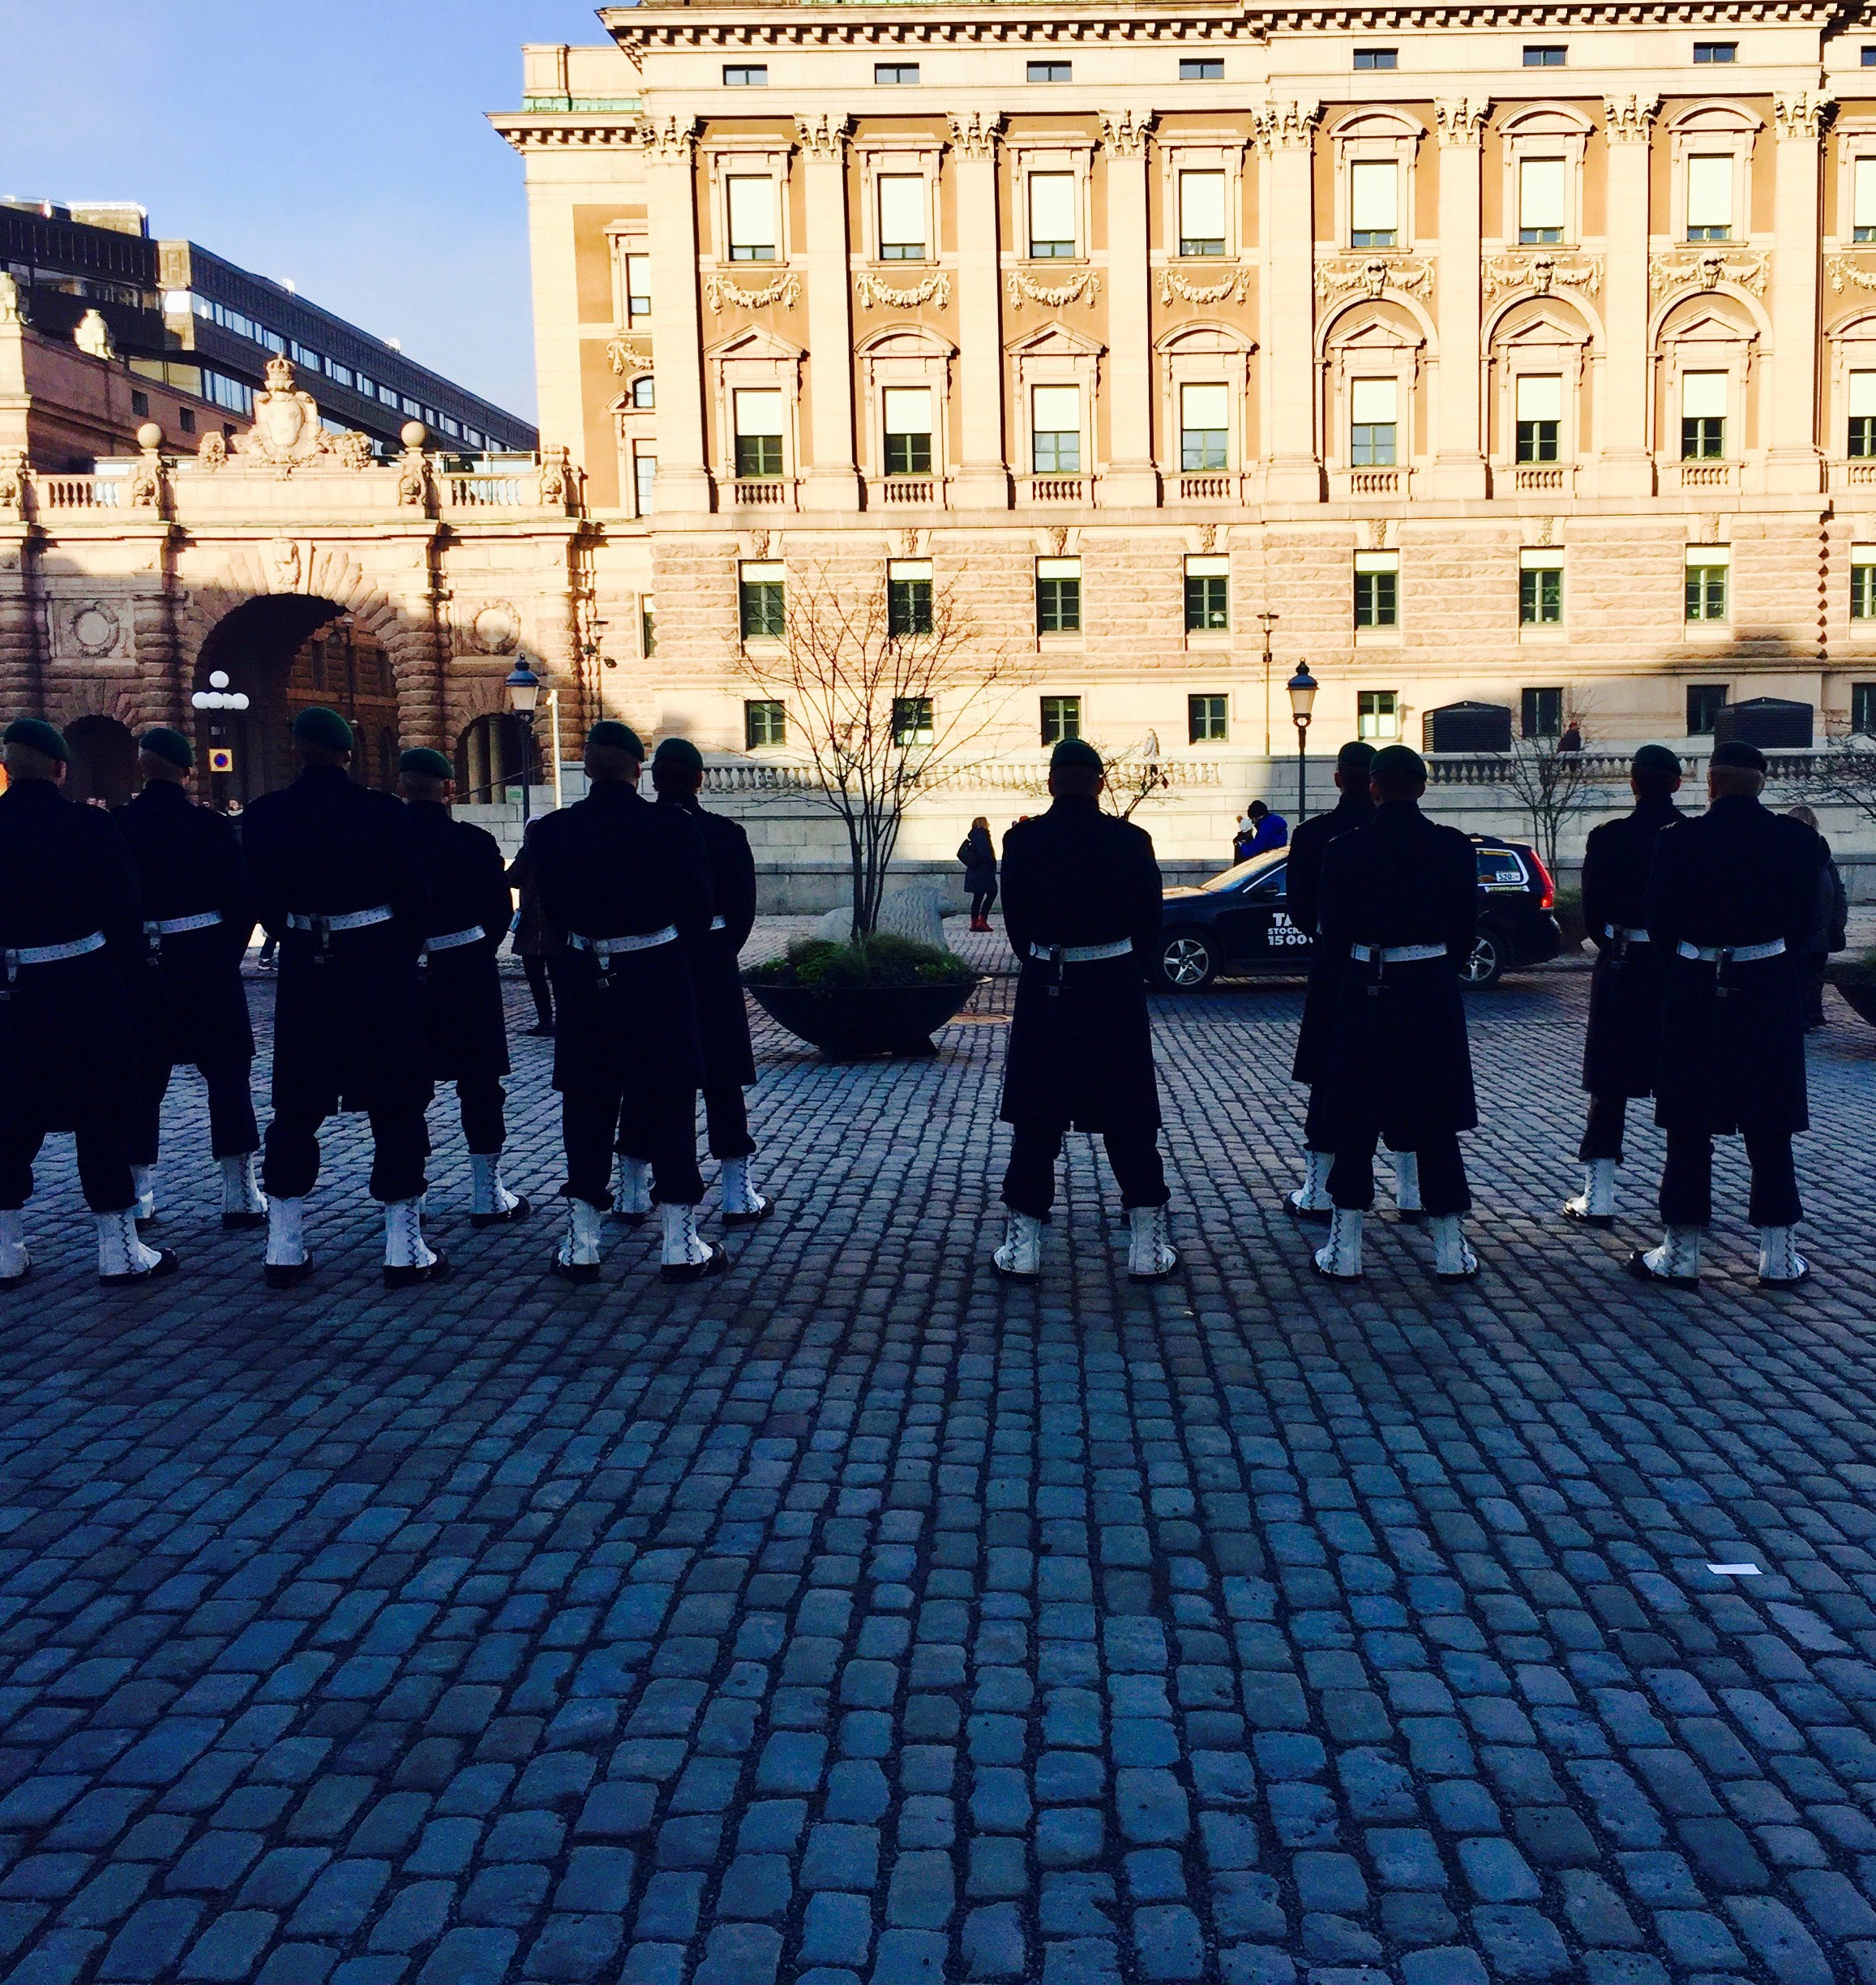 Handsome soldiers outside the Royal Palace.